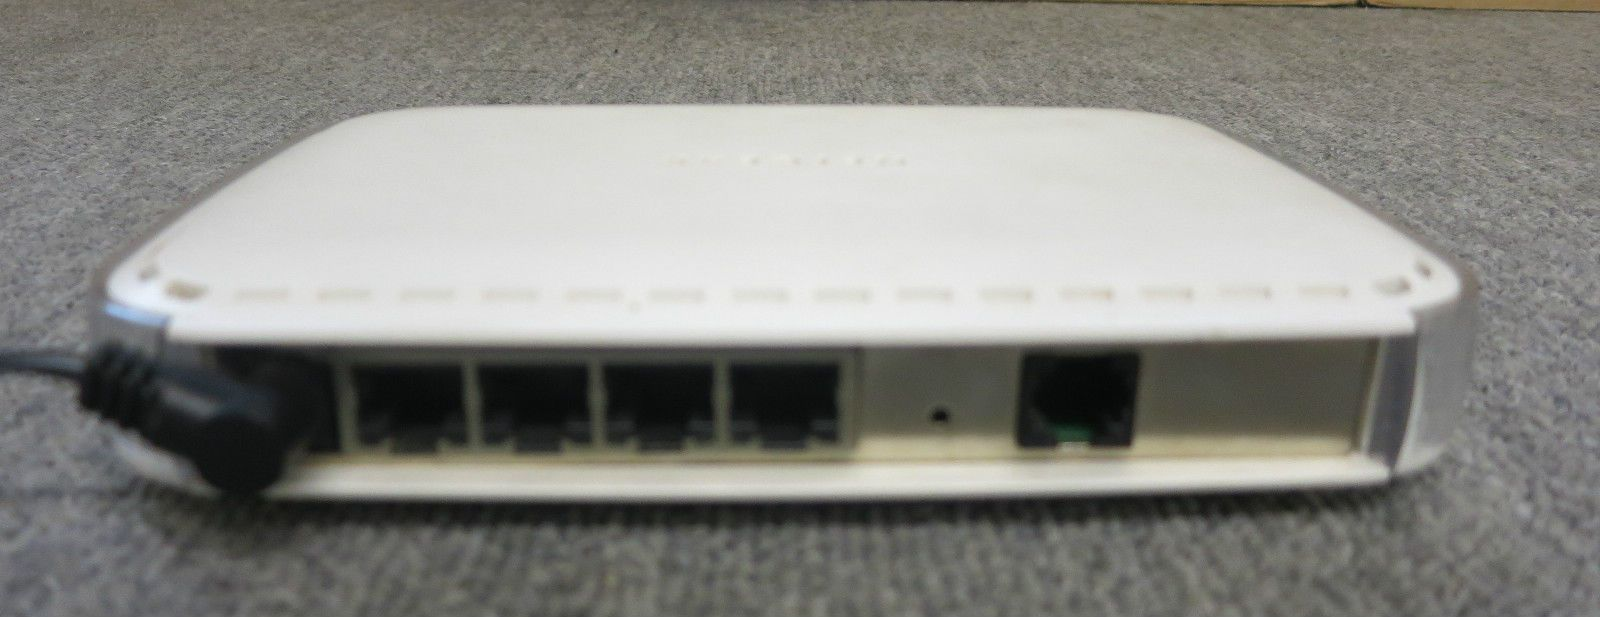 Netgear DG834 V2 Wired ADSL Firewall Router with 4-port 10 100 Mbps ...